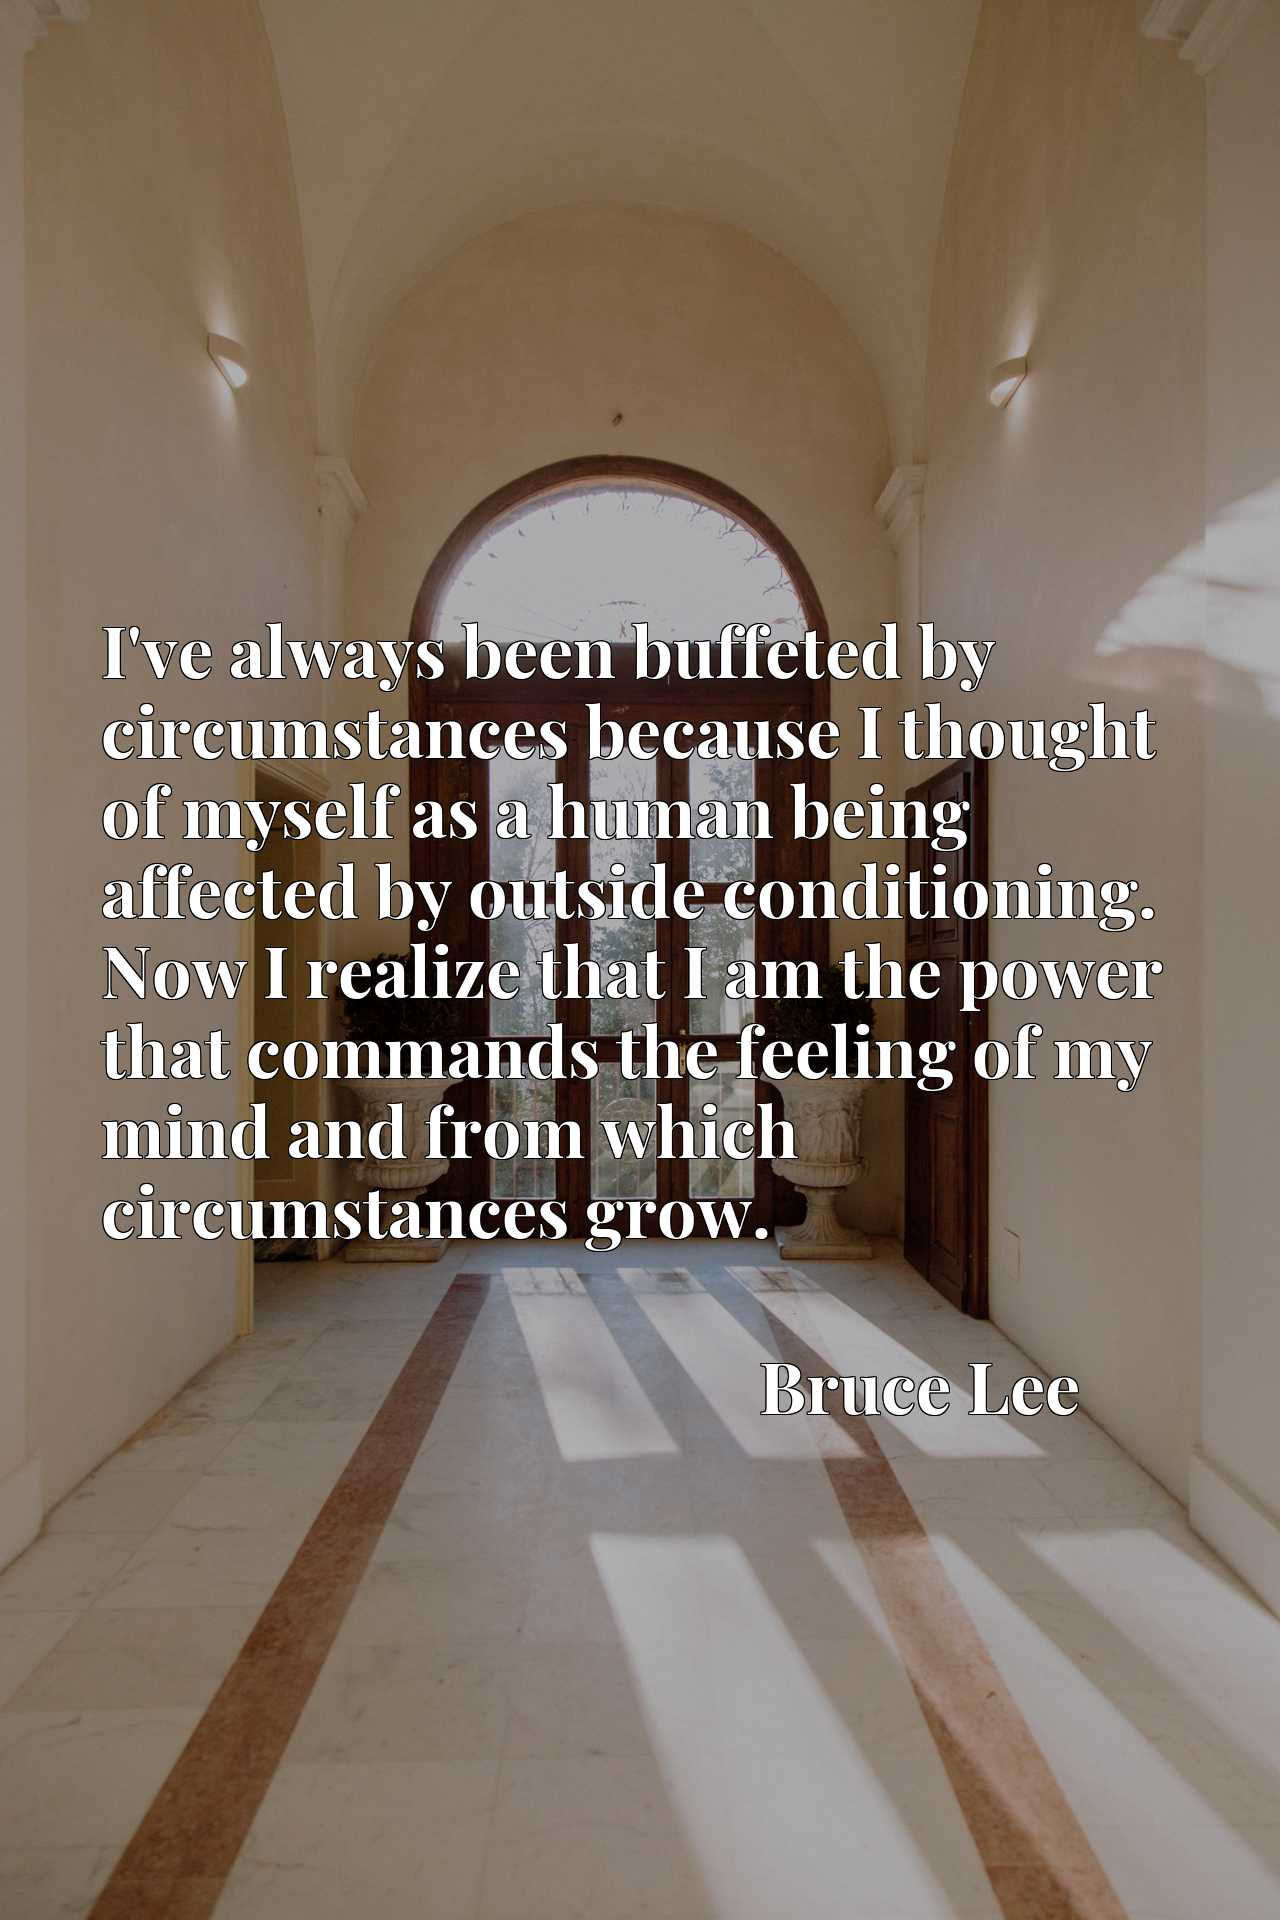 I've always been buffeted by circumstances because I thought of myself as a human being affected by outside conditioning. Now I realize that I am the power that commands the feeling of my mind and from which circumstances grow.